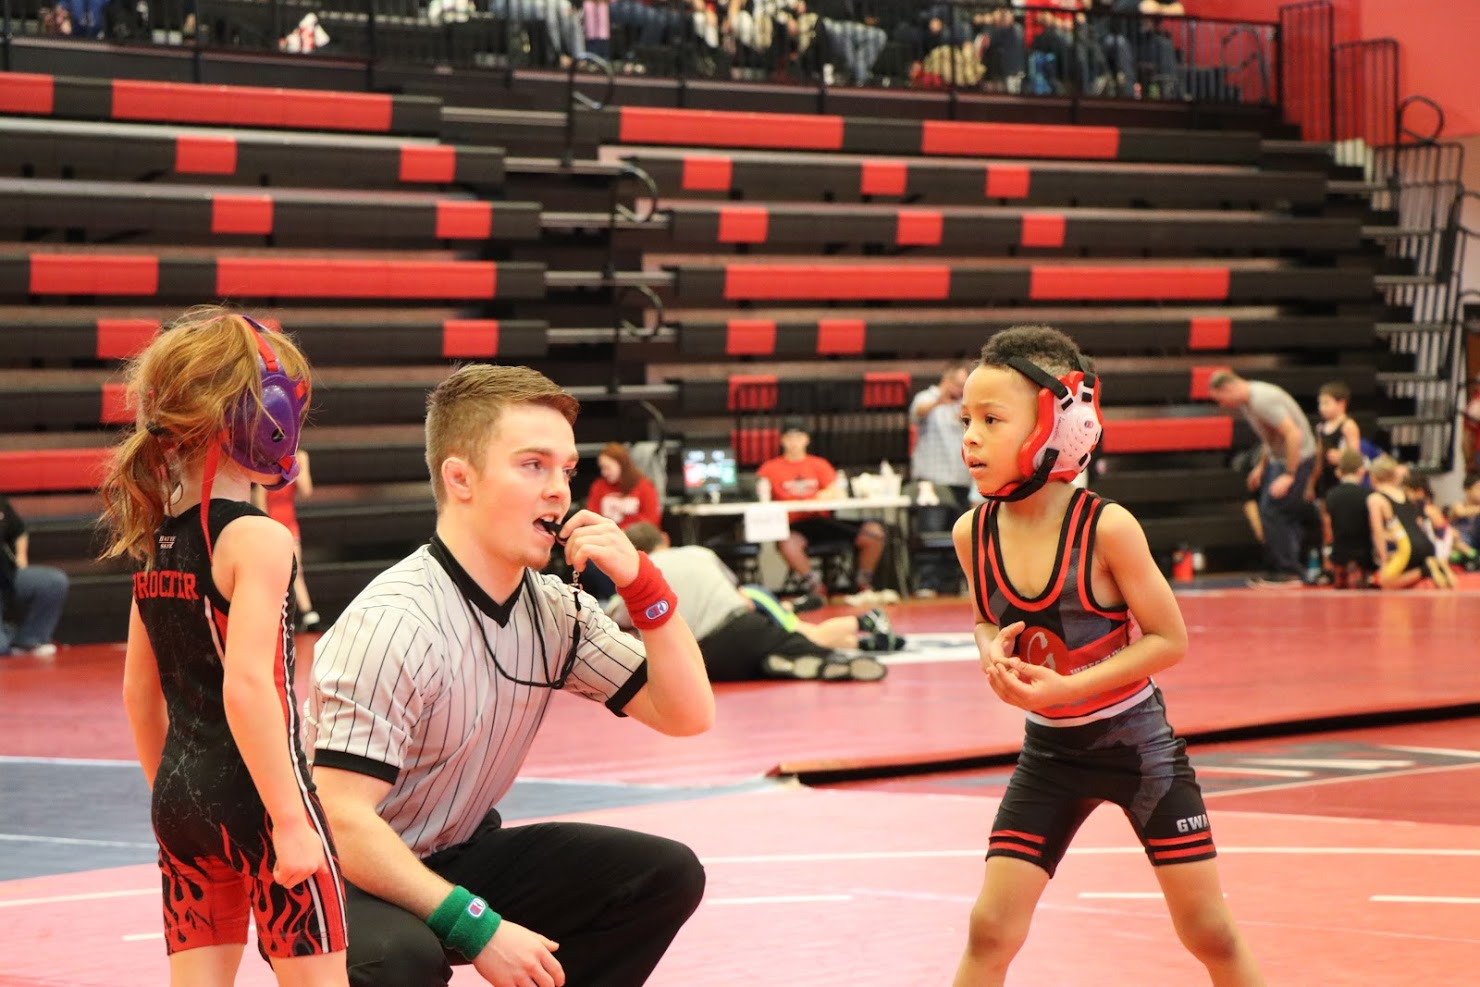 Wrestler and referee at Alexander Tournament